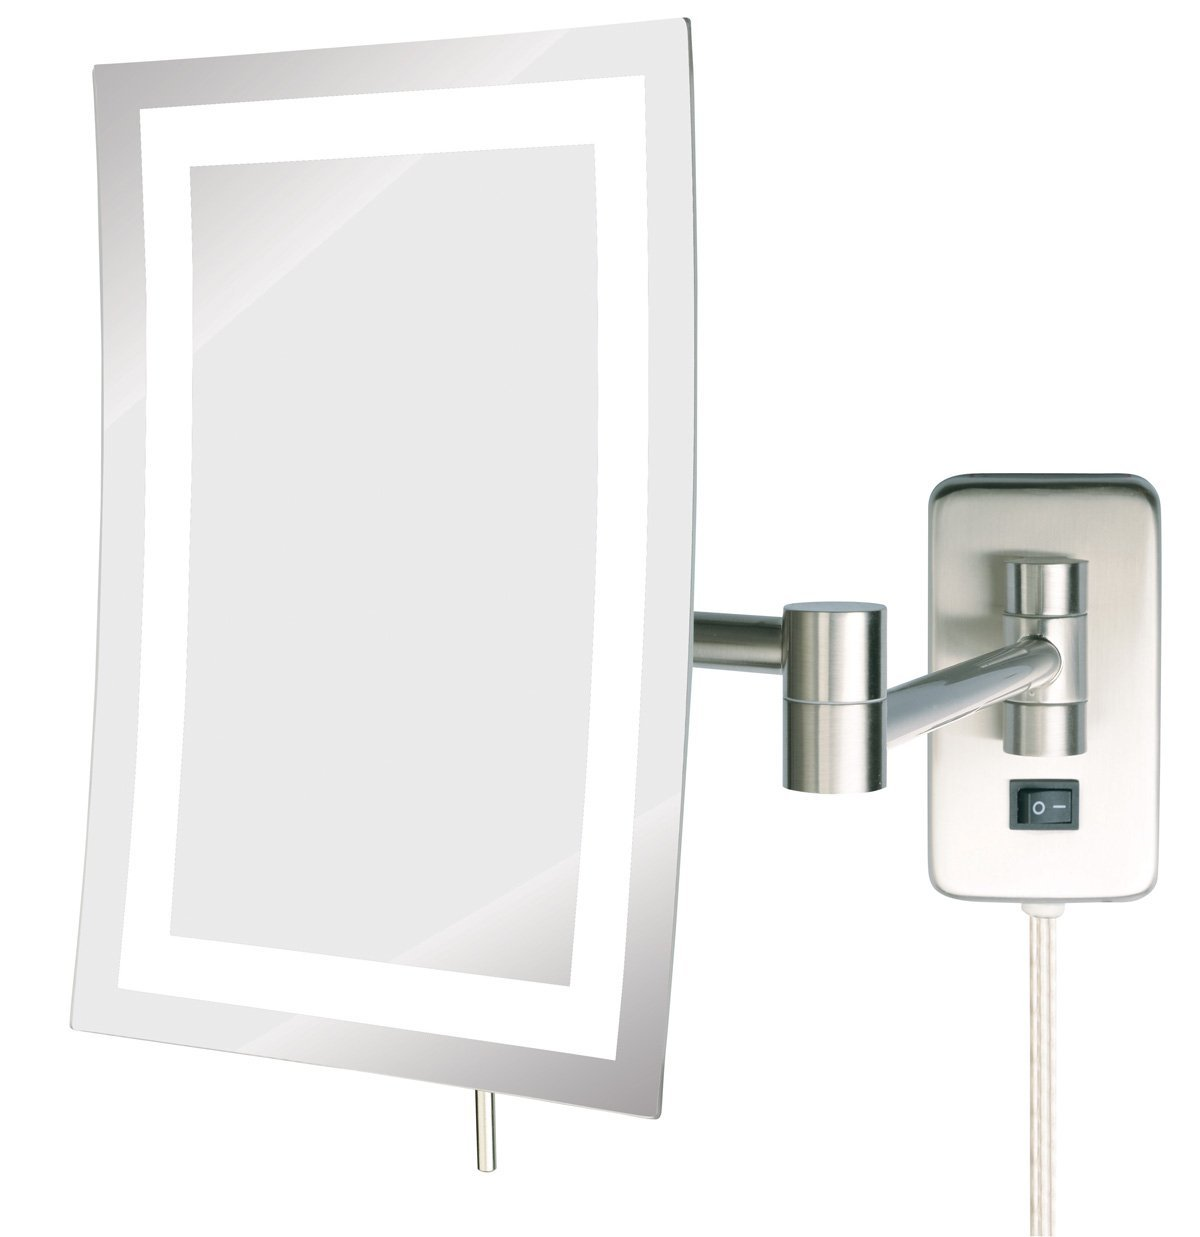 JRT710NL 6.5-Inch 9-Inch LED Lighted Wall Mount Rectangular Makeup ...